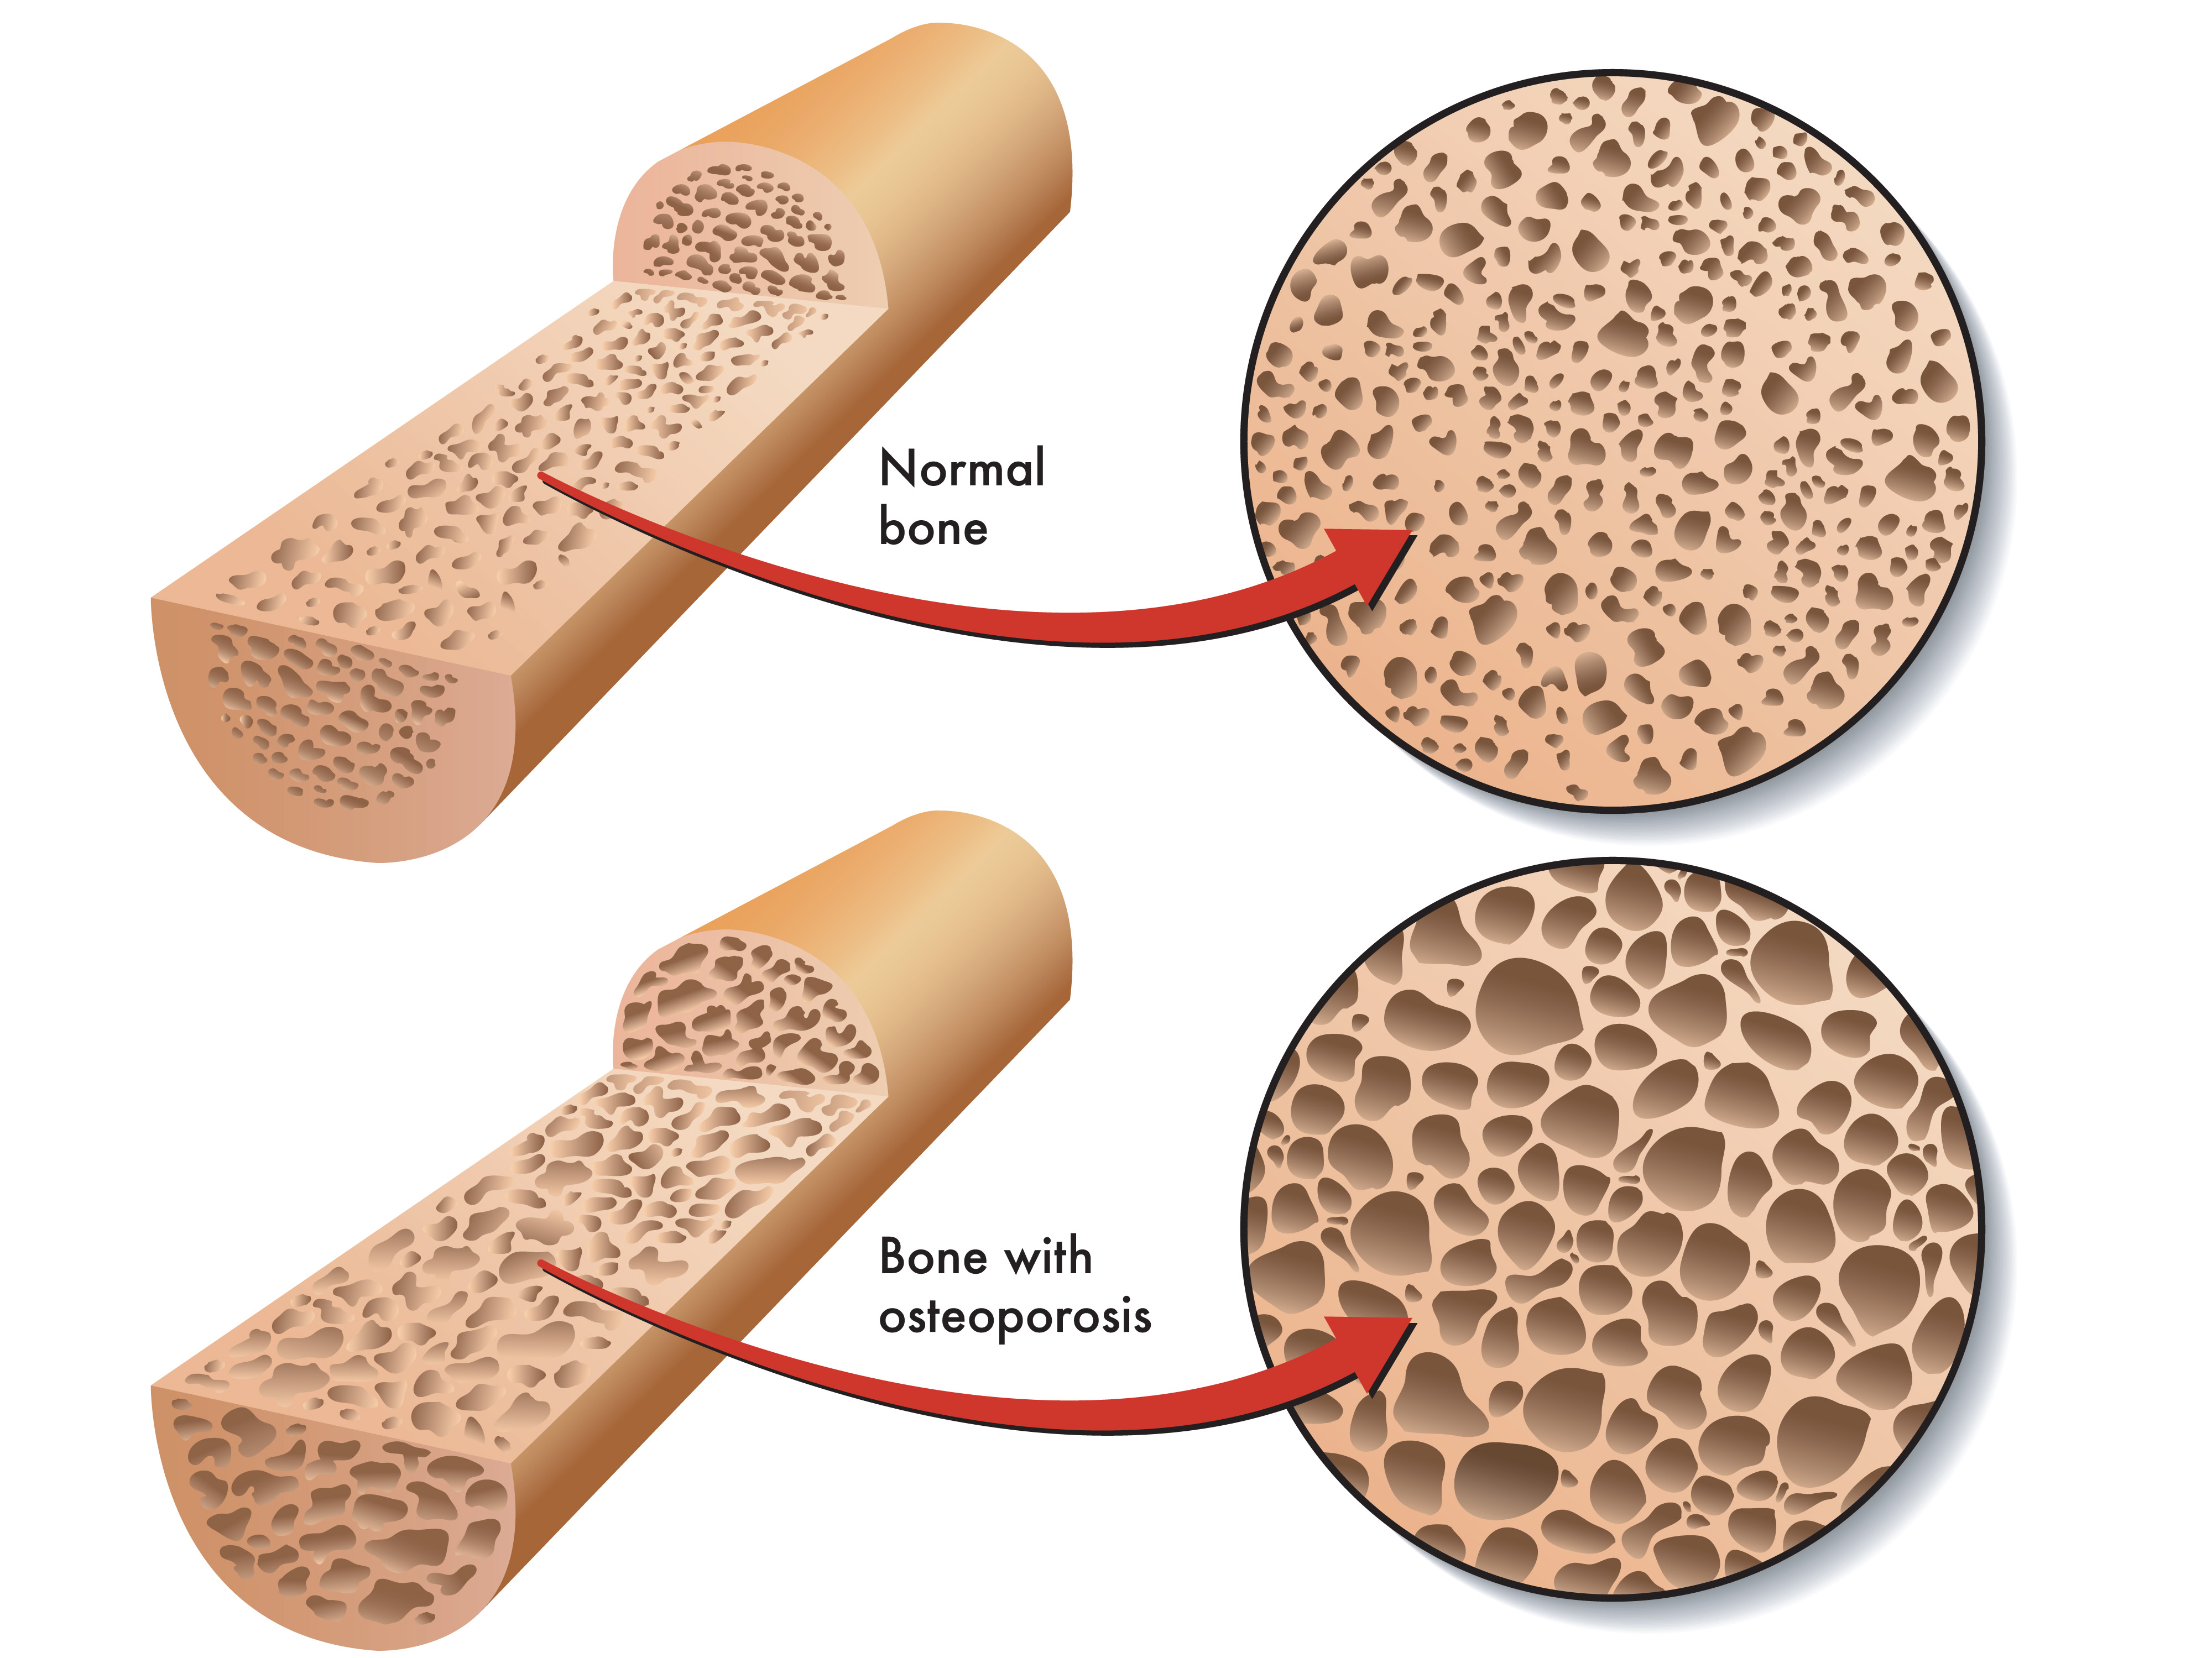 http://www.painmanagementworks.com/may-is-osteoporosis-awareness-month/